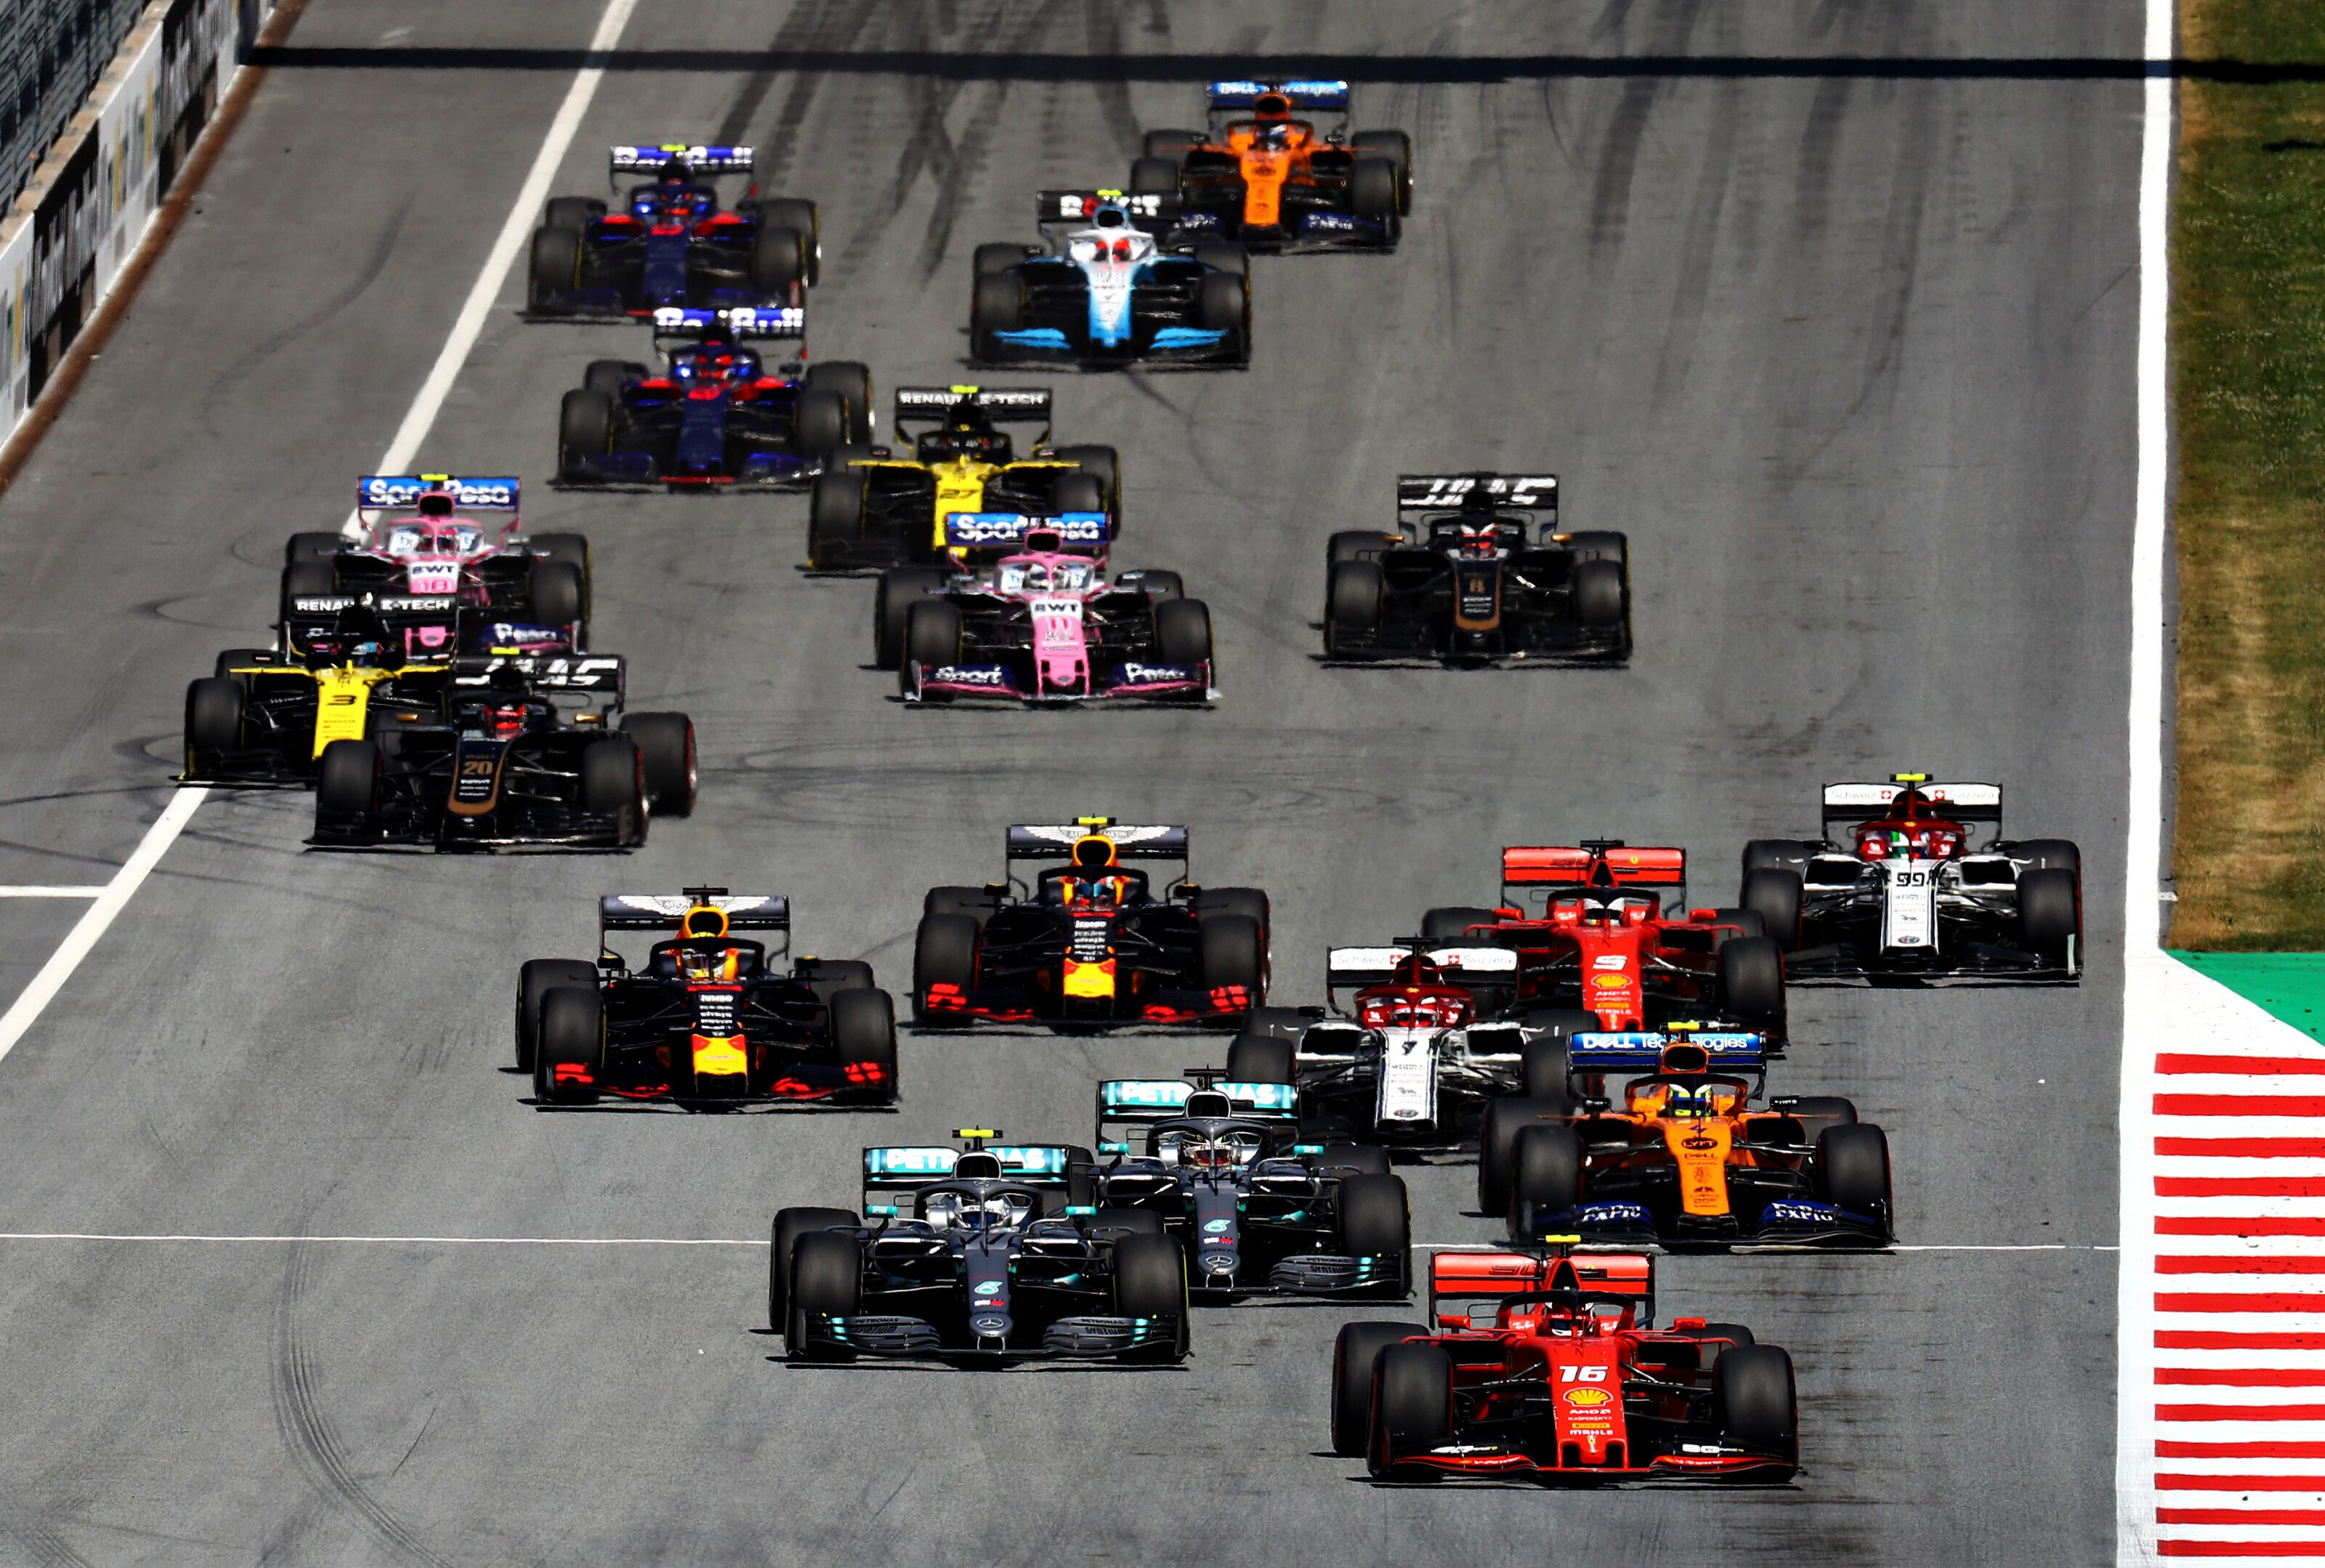 Formula 1: 2020 schedule revealed, features all-time record 22 races